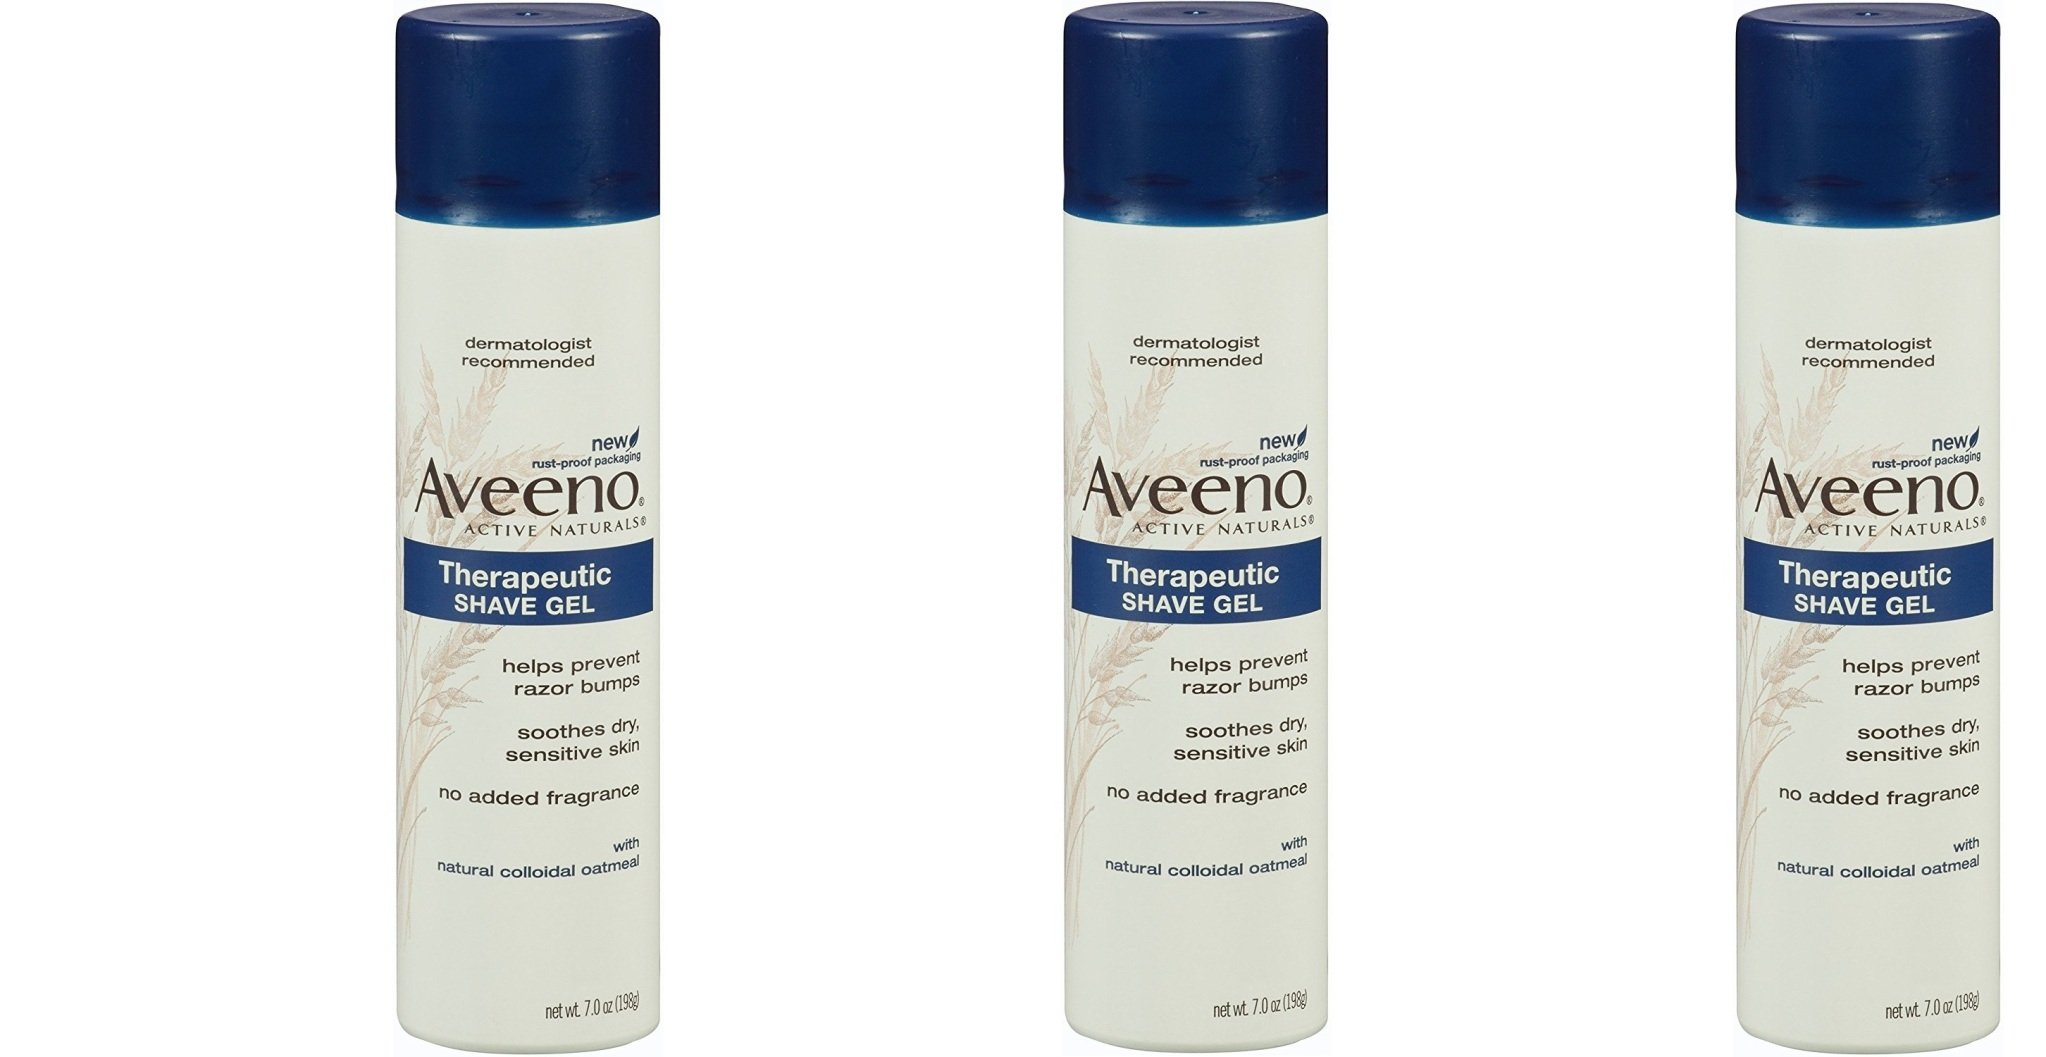 Aveeno Skin Relief Shave Gel qjXDOc, 3 Pack (7 Ounce) by Aveeno (Image #1)